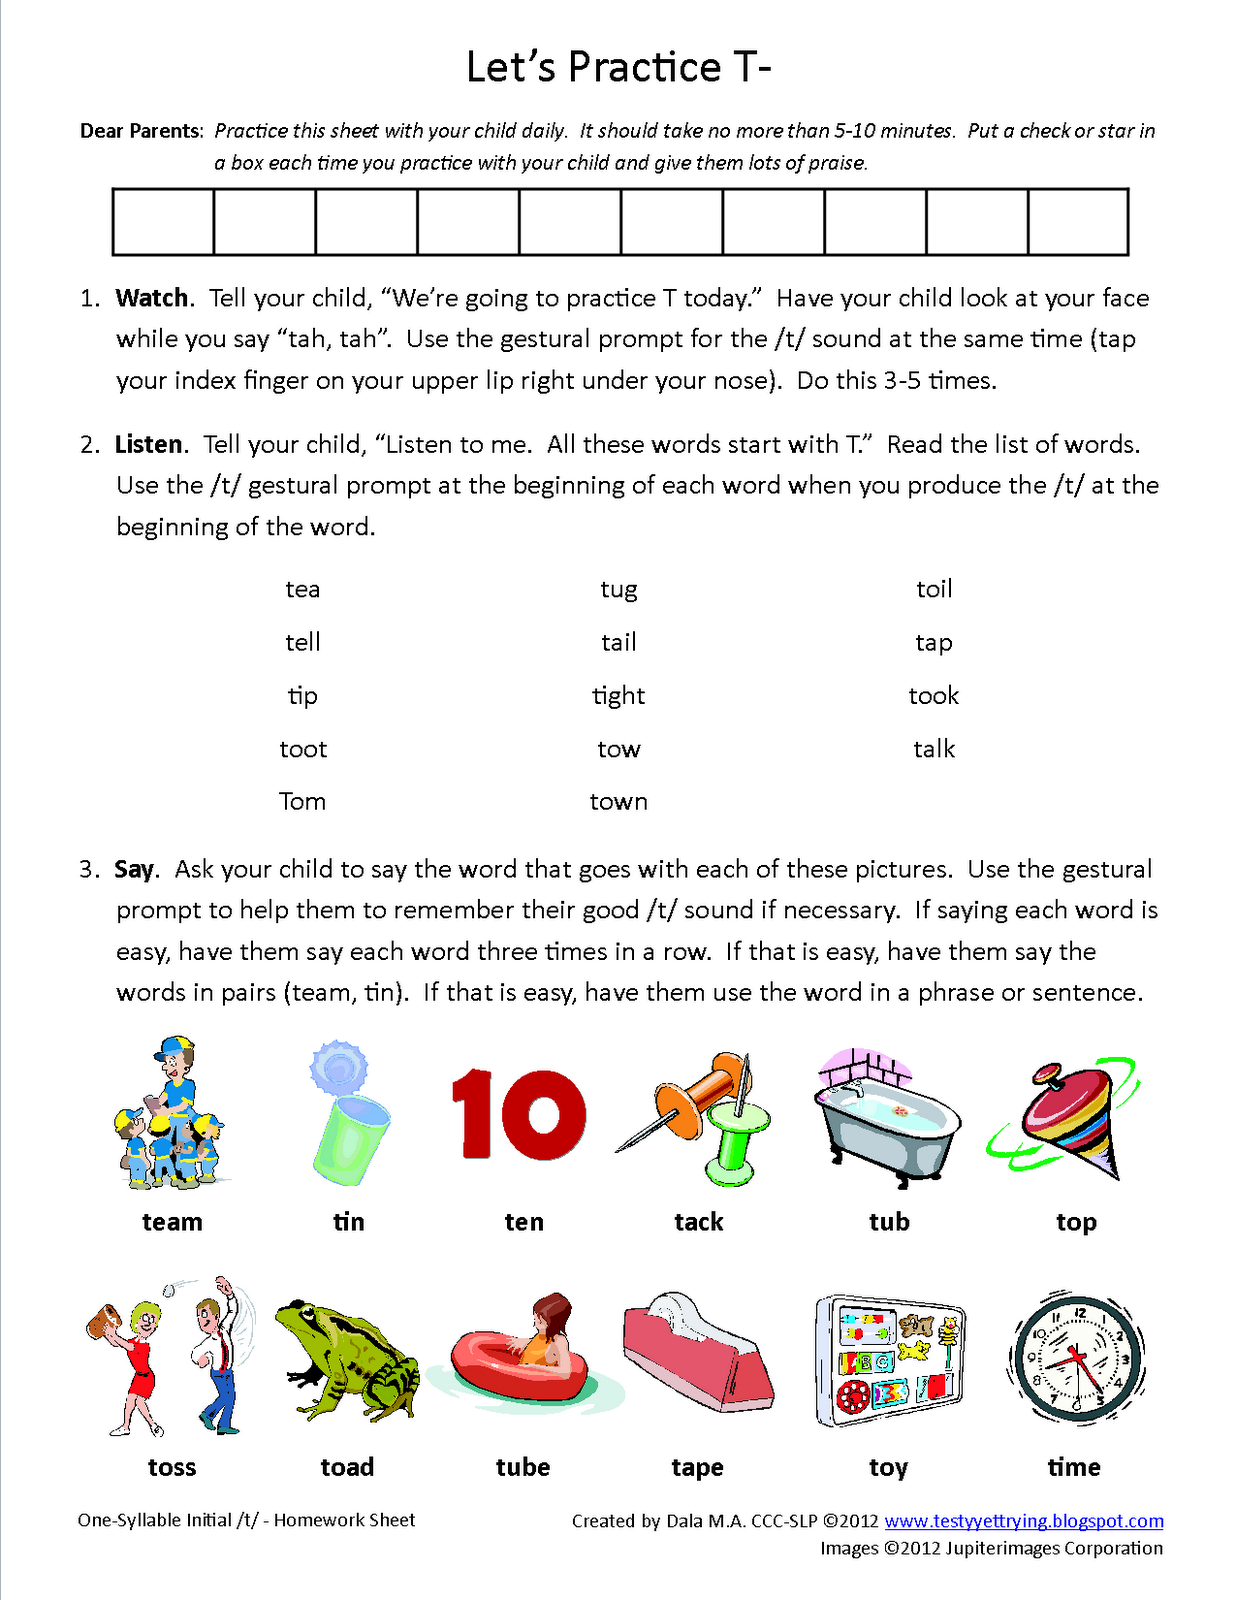 Initial T Homework Sheet Free Speech Therapy Articulation Worksheet Testy Yet Trying Pinned